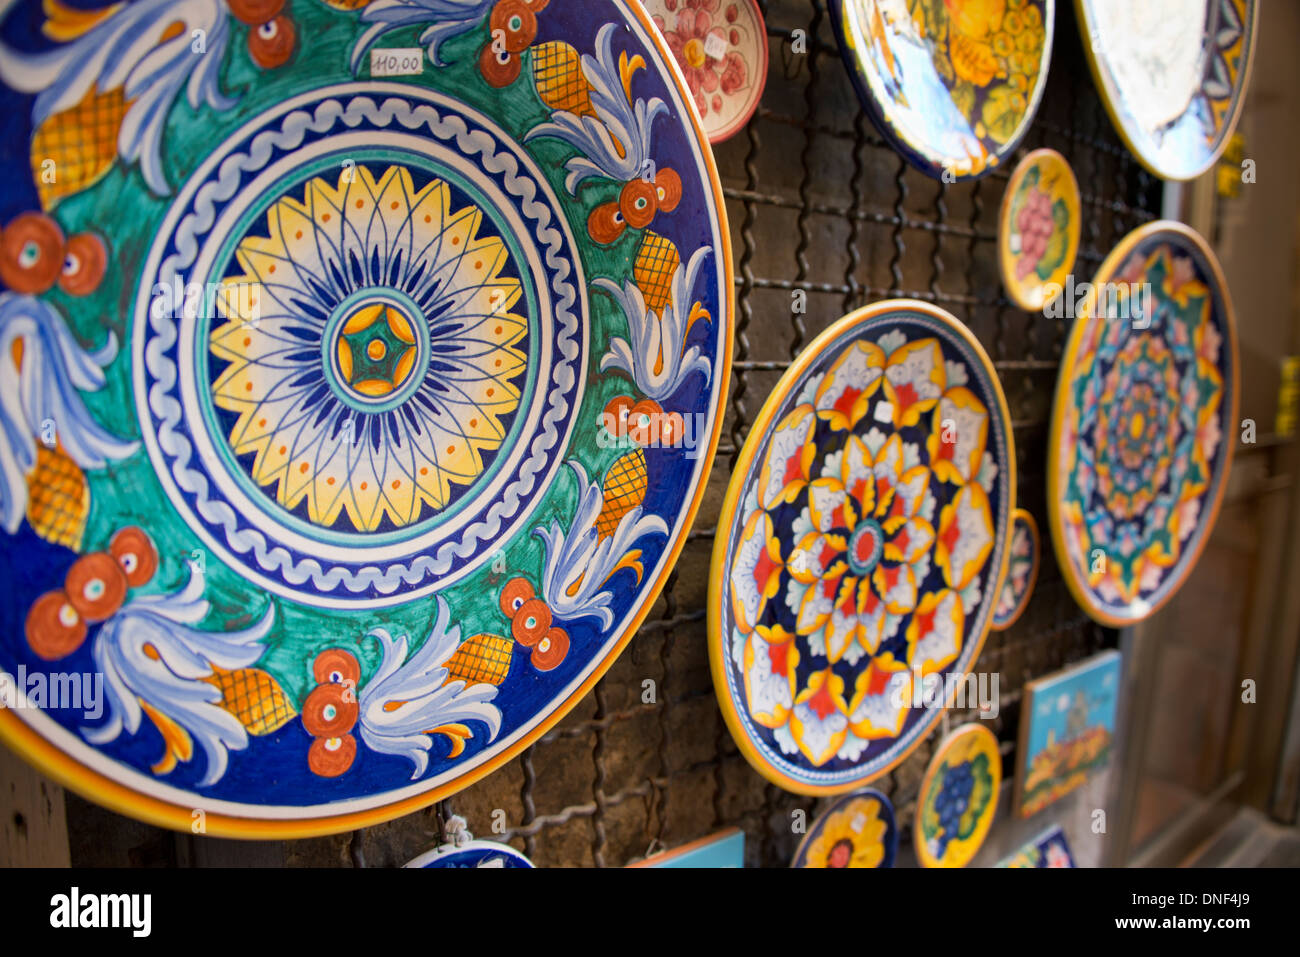 Italy Orvieto. Detail of traditional Italian hand painted pottery plates for sale in the narrow streets of Orvieto. & Italy Orvieto. Detail of traditional Italian hand painted pottery ...